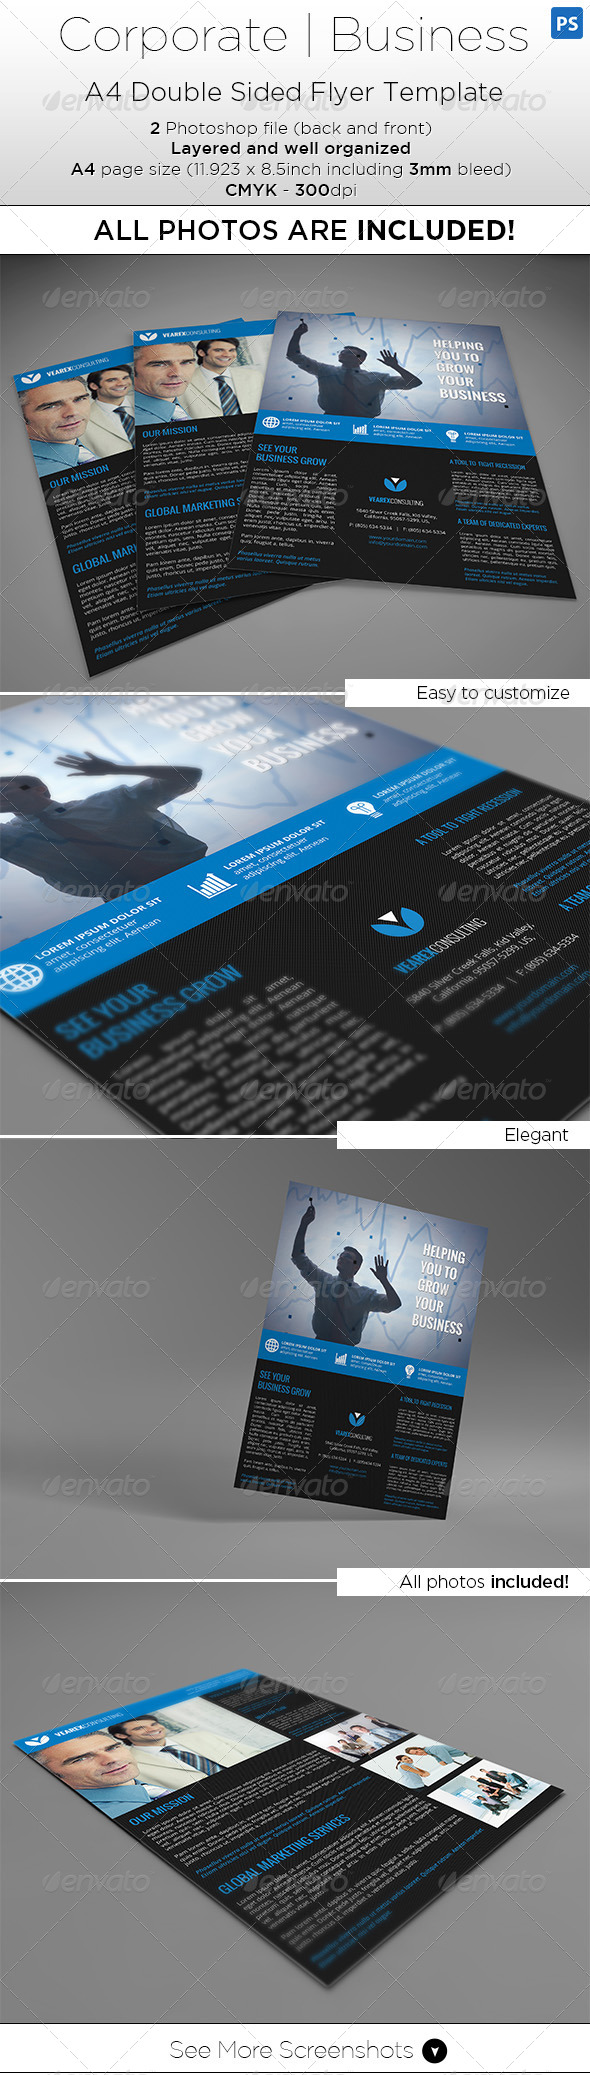 GraphicRiver A4 Double Side Flyer Template All Photos Included 7992590